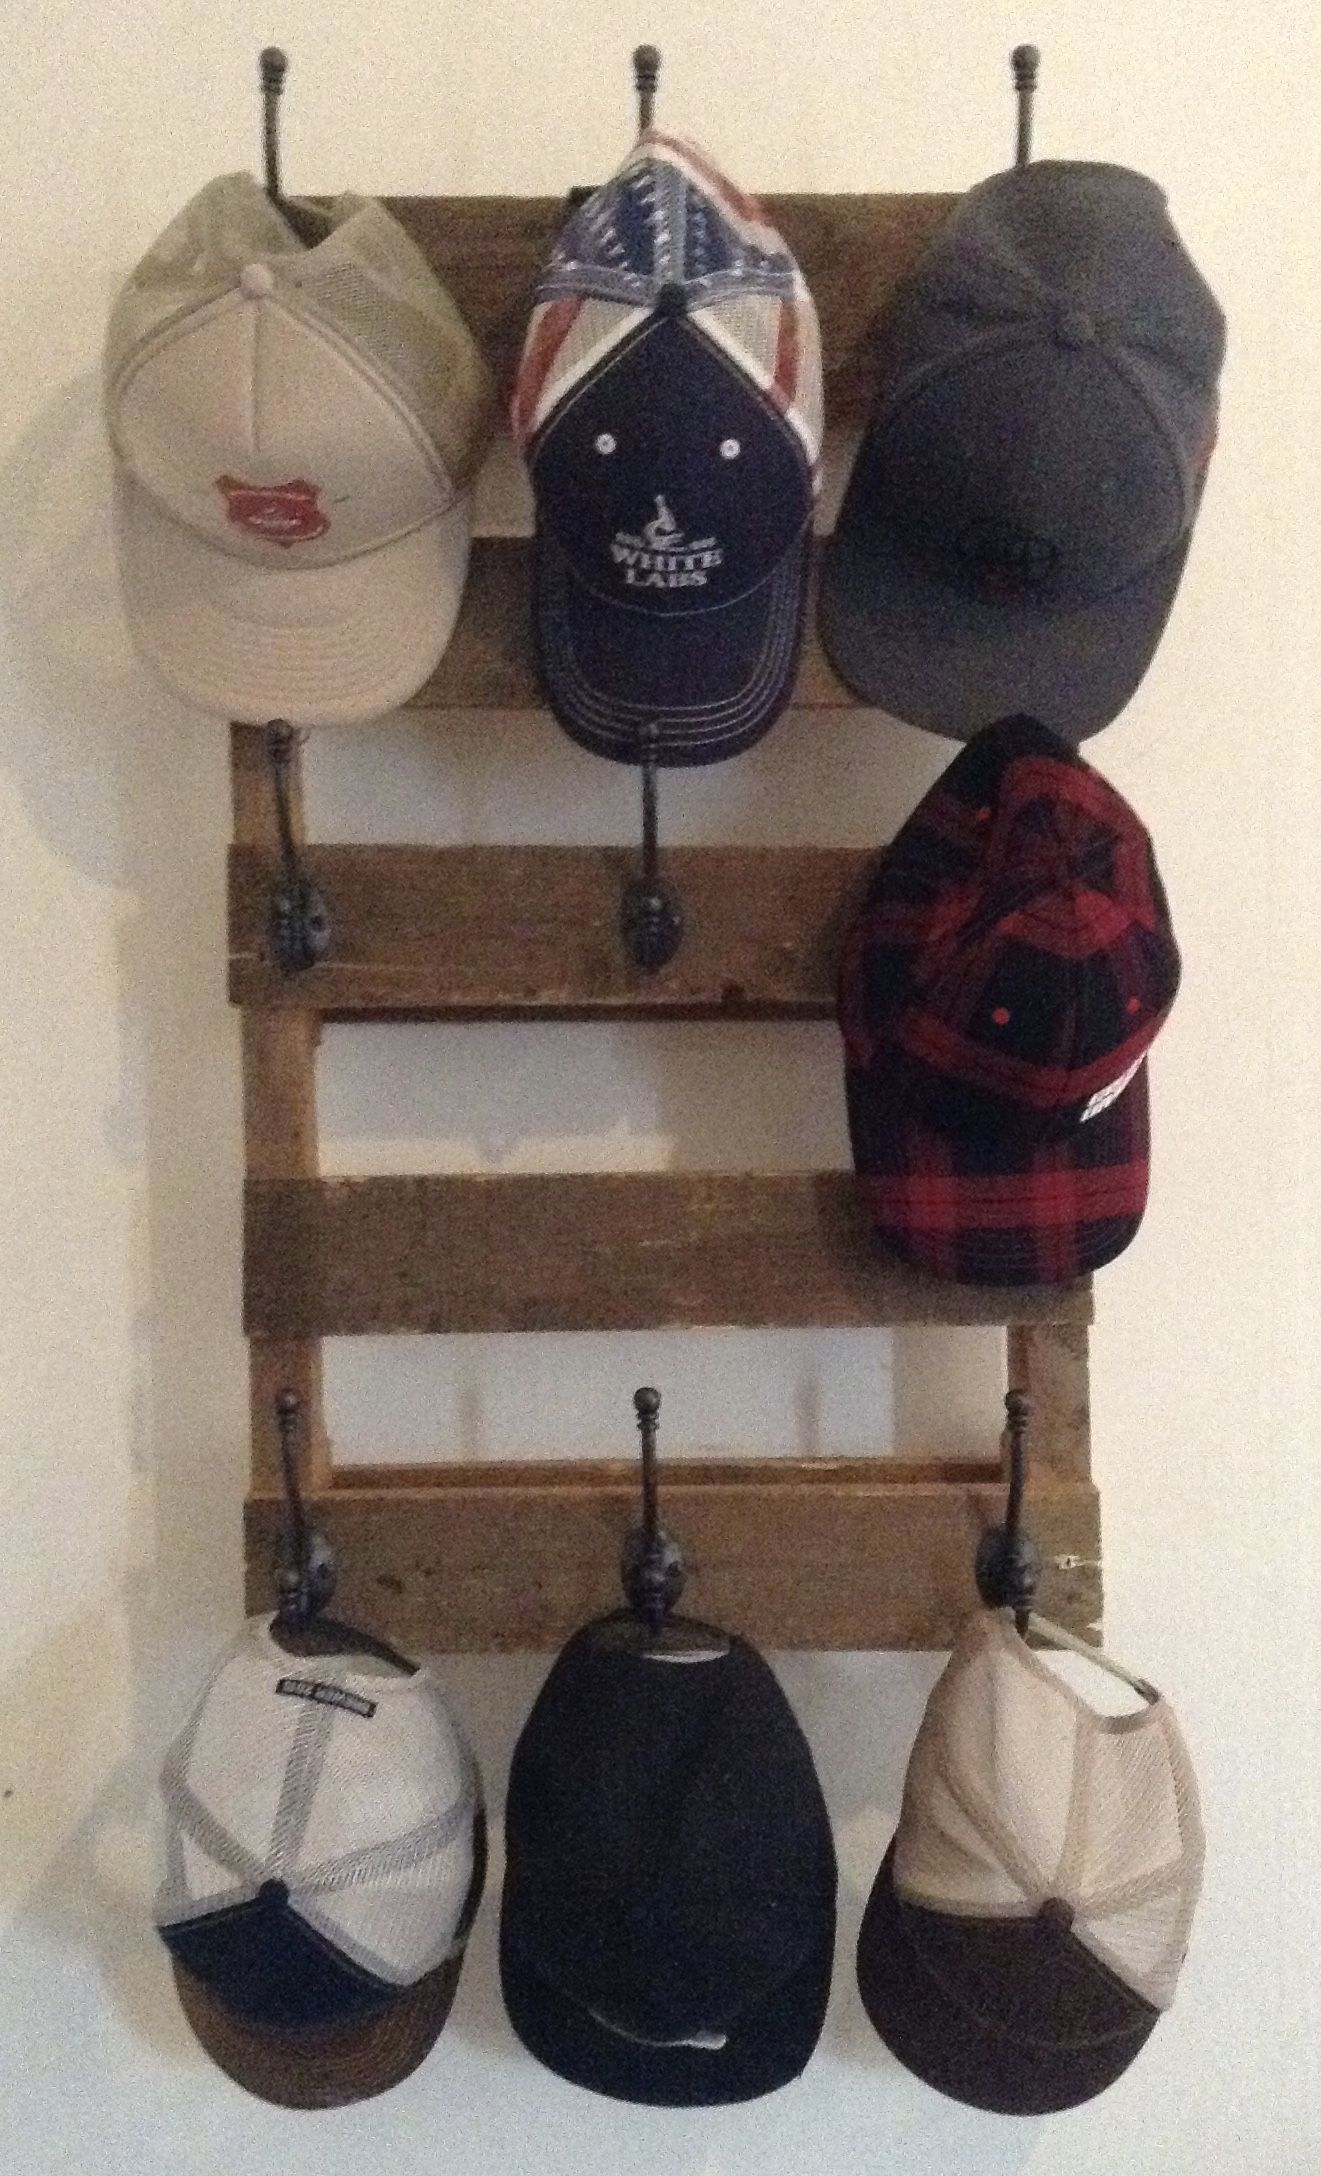 21 DIY Hat Rack Ideas To Make Your Hats More Tidy and Good Looking & 21 DIY Hat Rack Ideas To Make Your Hats More Tidy and Good Looking ...